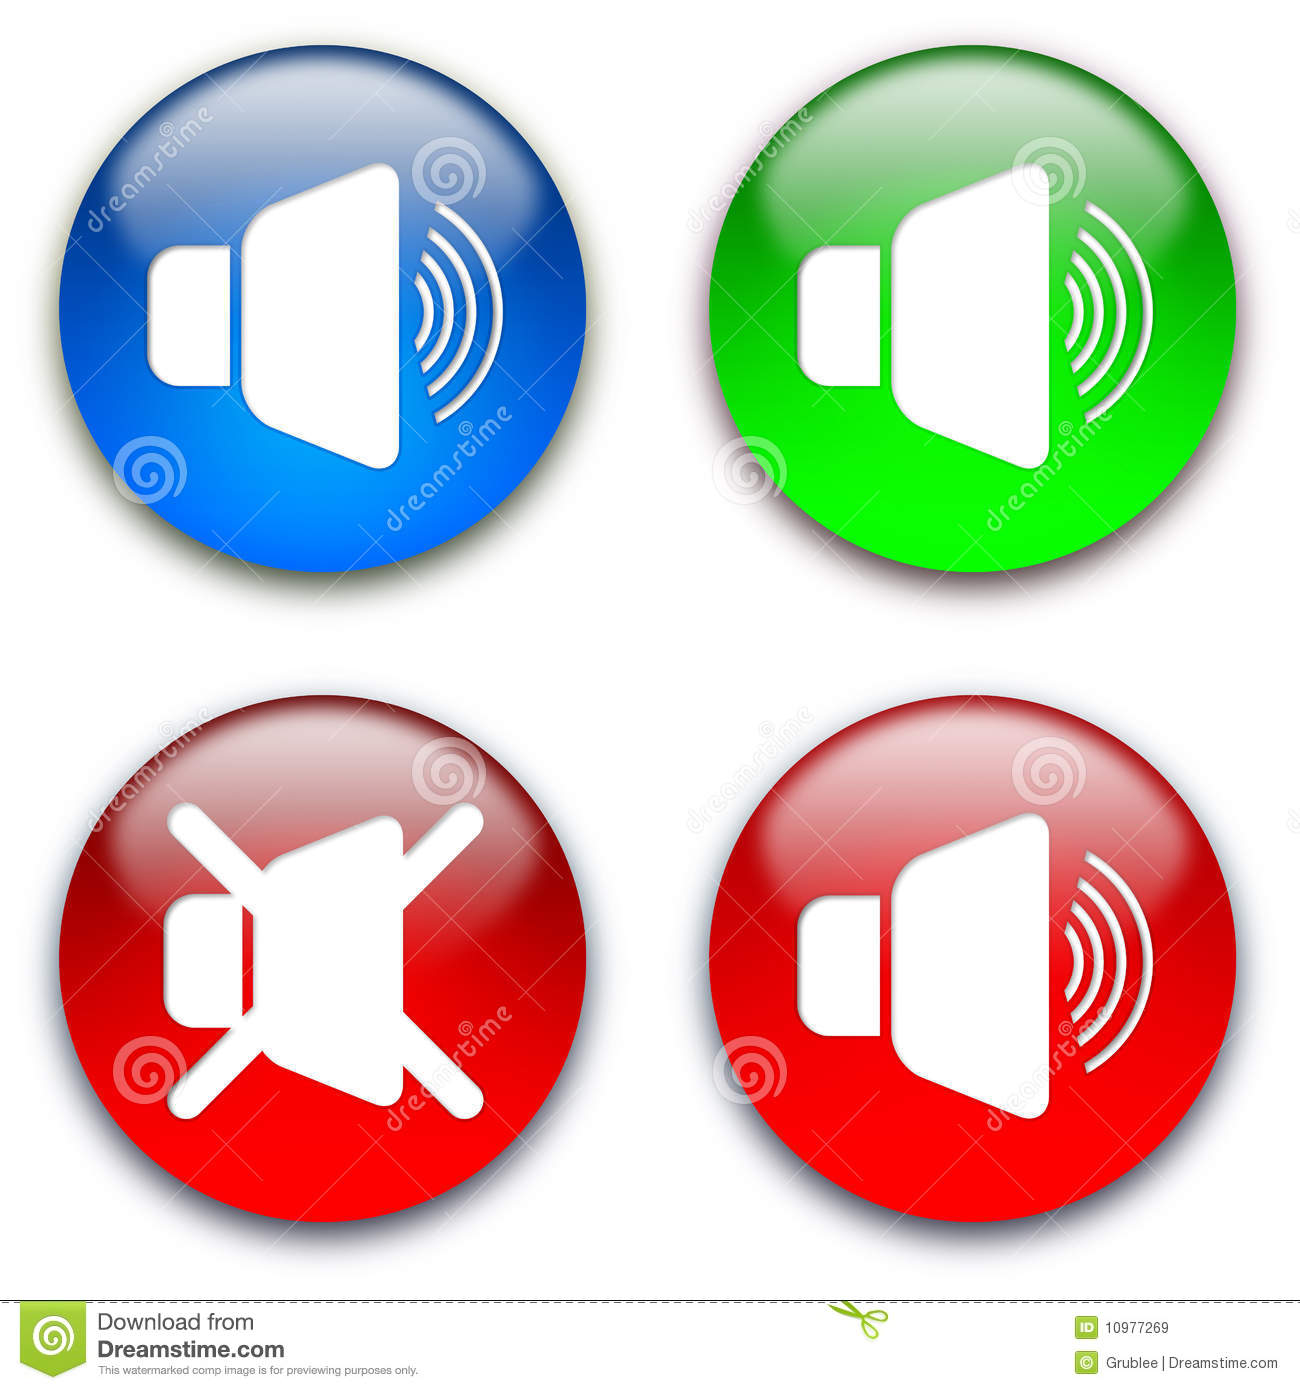 Loud Speaker Mute Buttons Royalty Free Stock Images - Image: 10977269